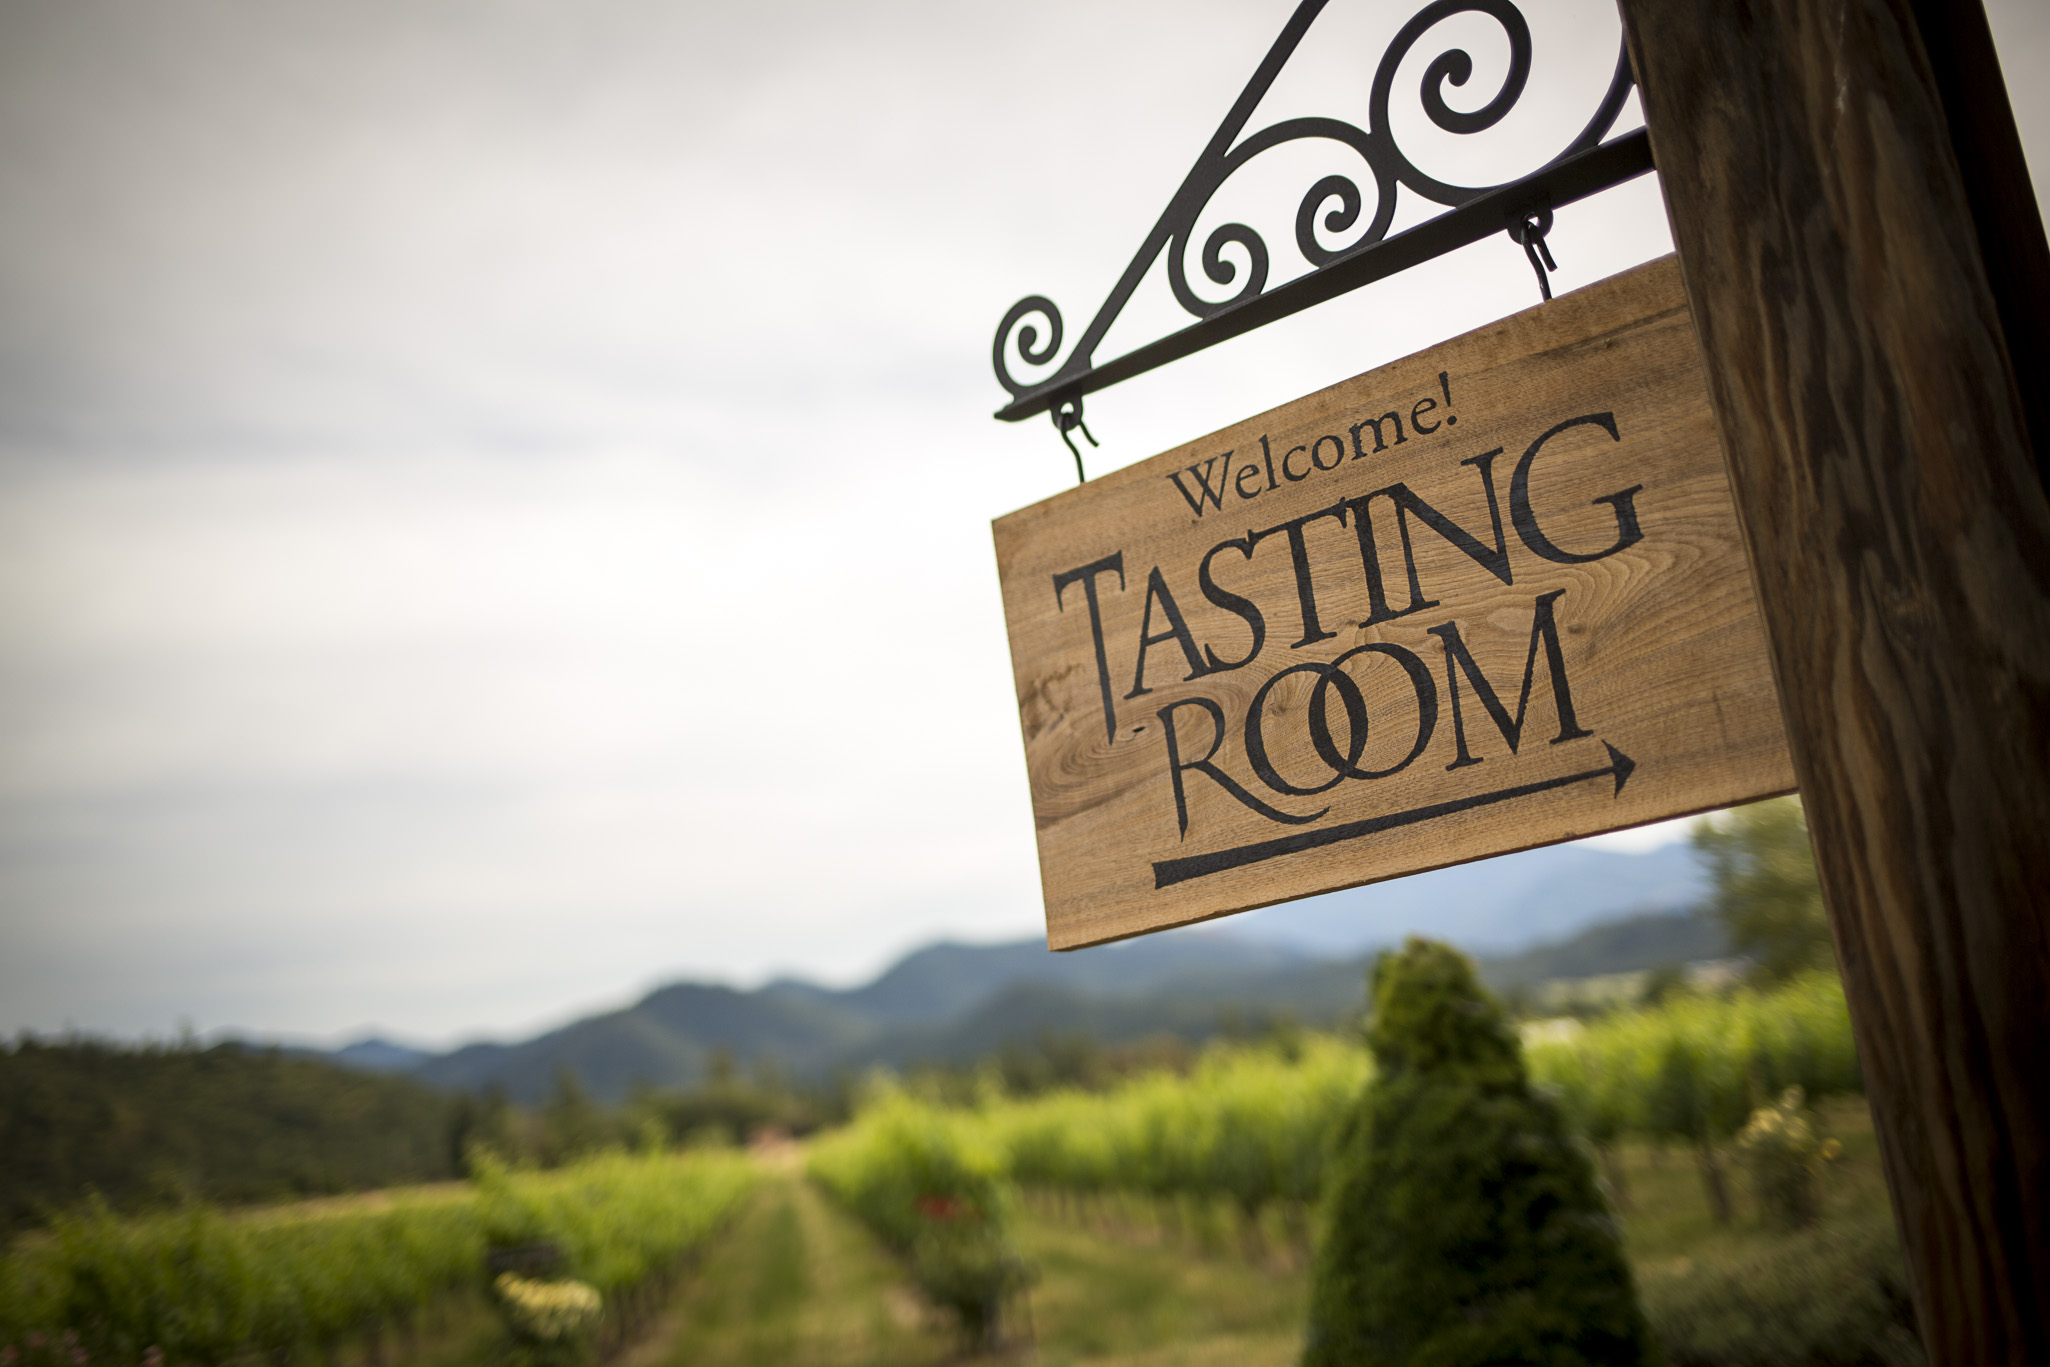 Oregon Wine Photography, wine photographs, oregon travel photography, editorial photography, travel photography, magazine photography, New York Times Travel, Portland People Photography, nashco photo and video, Nashco, www.nashcophoto.com, crafted reality, www.leahnash.com, leah nash, portland editorial photographer, people photographer, photojournalism, photojournalist, www.christopheronstott.com, christopher onstott